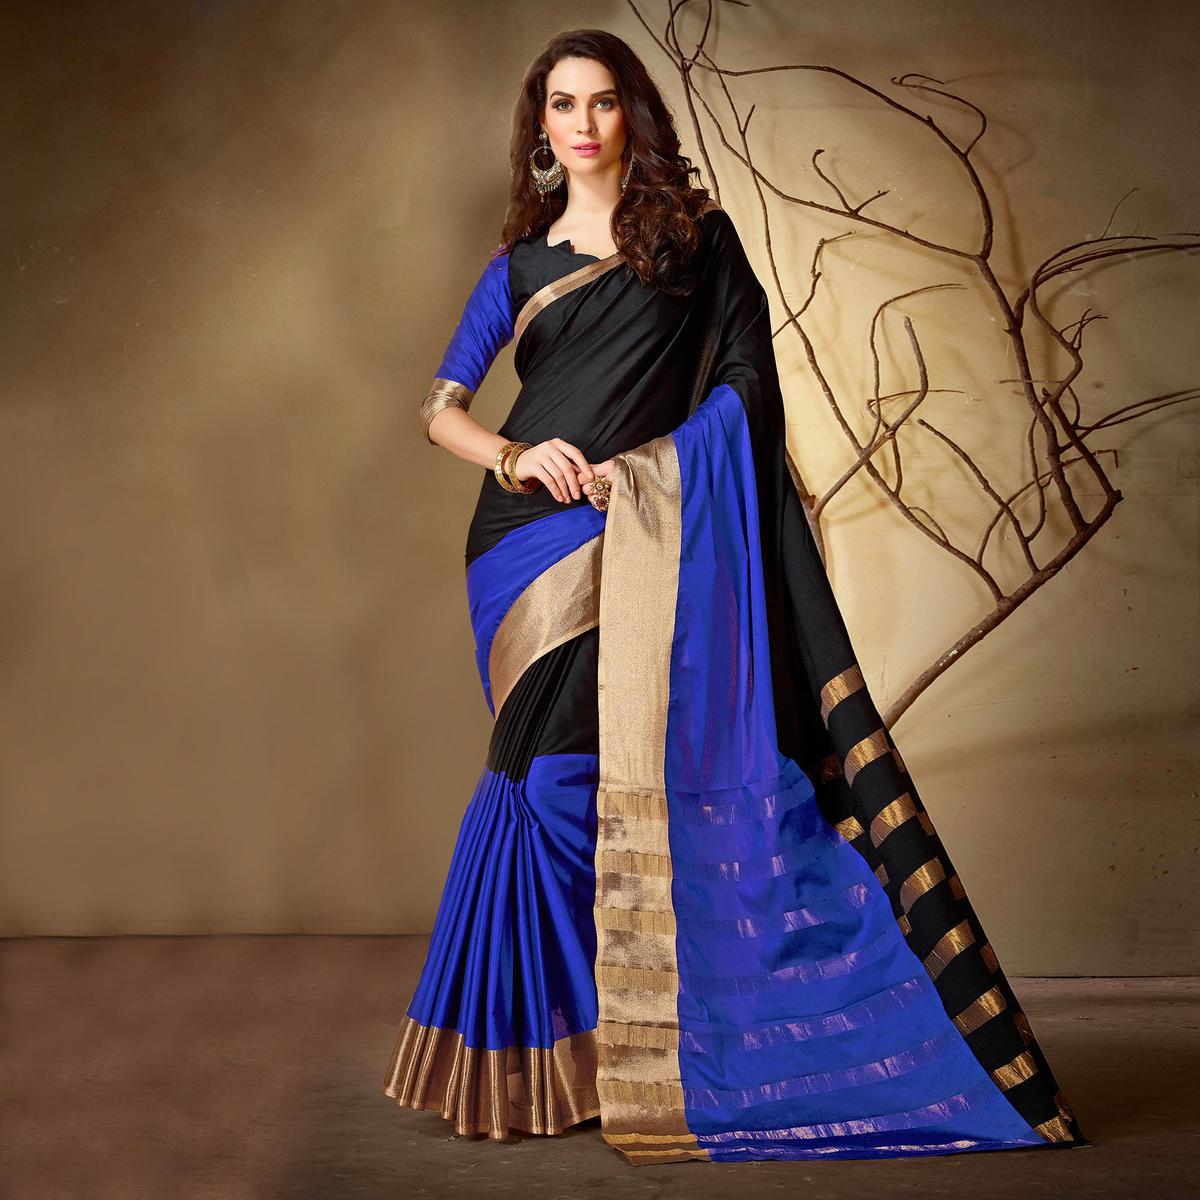 eb4517d5dcd3d Buy Adorning Royal Blue - Purple Colored Festive Wear Woven Cotton Silk  Saree for womens online India